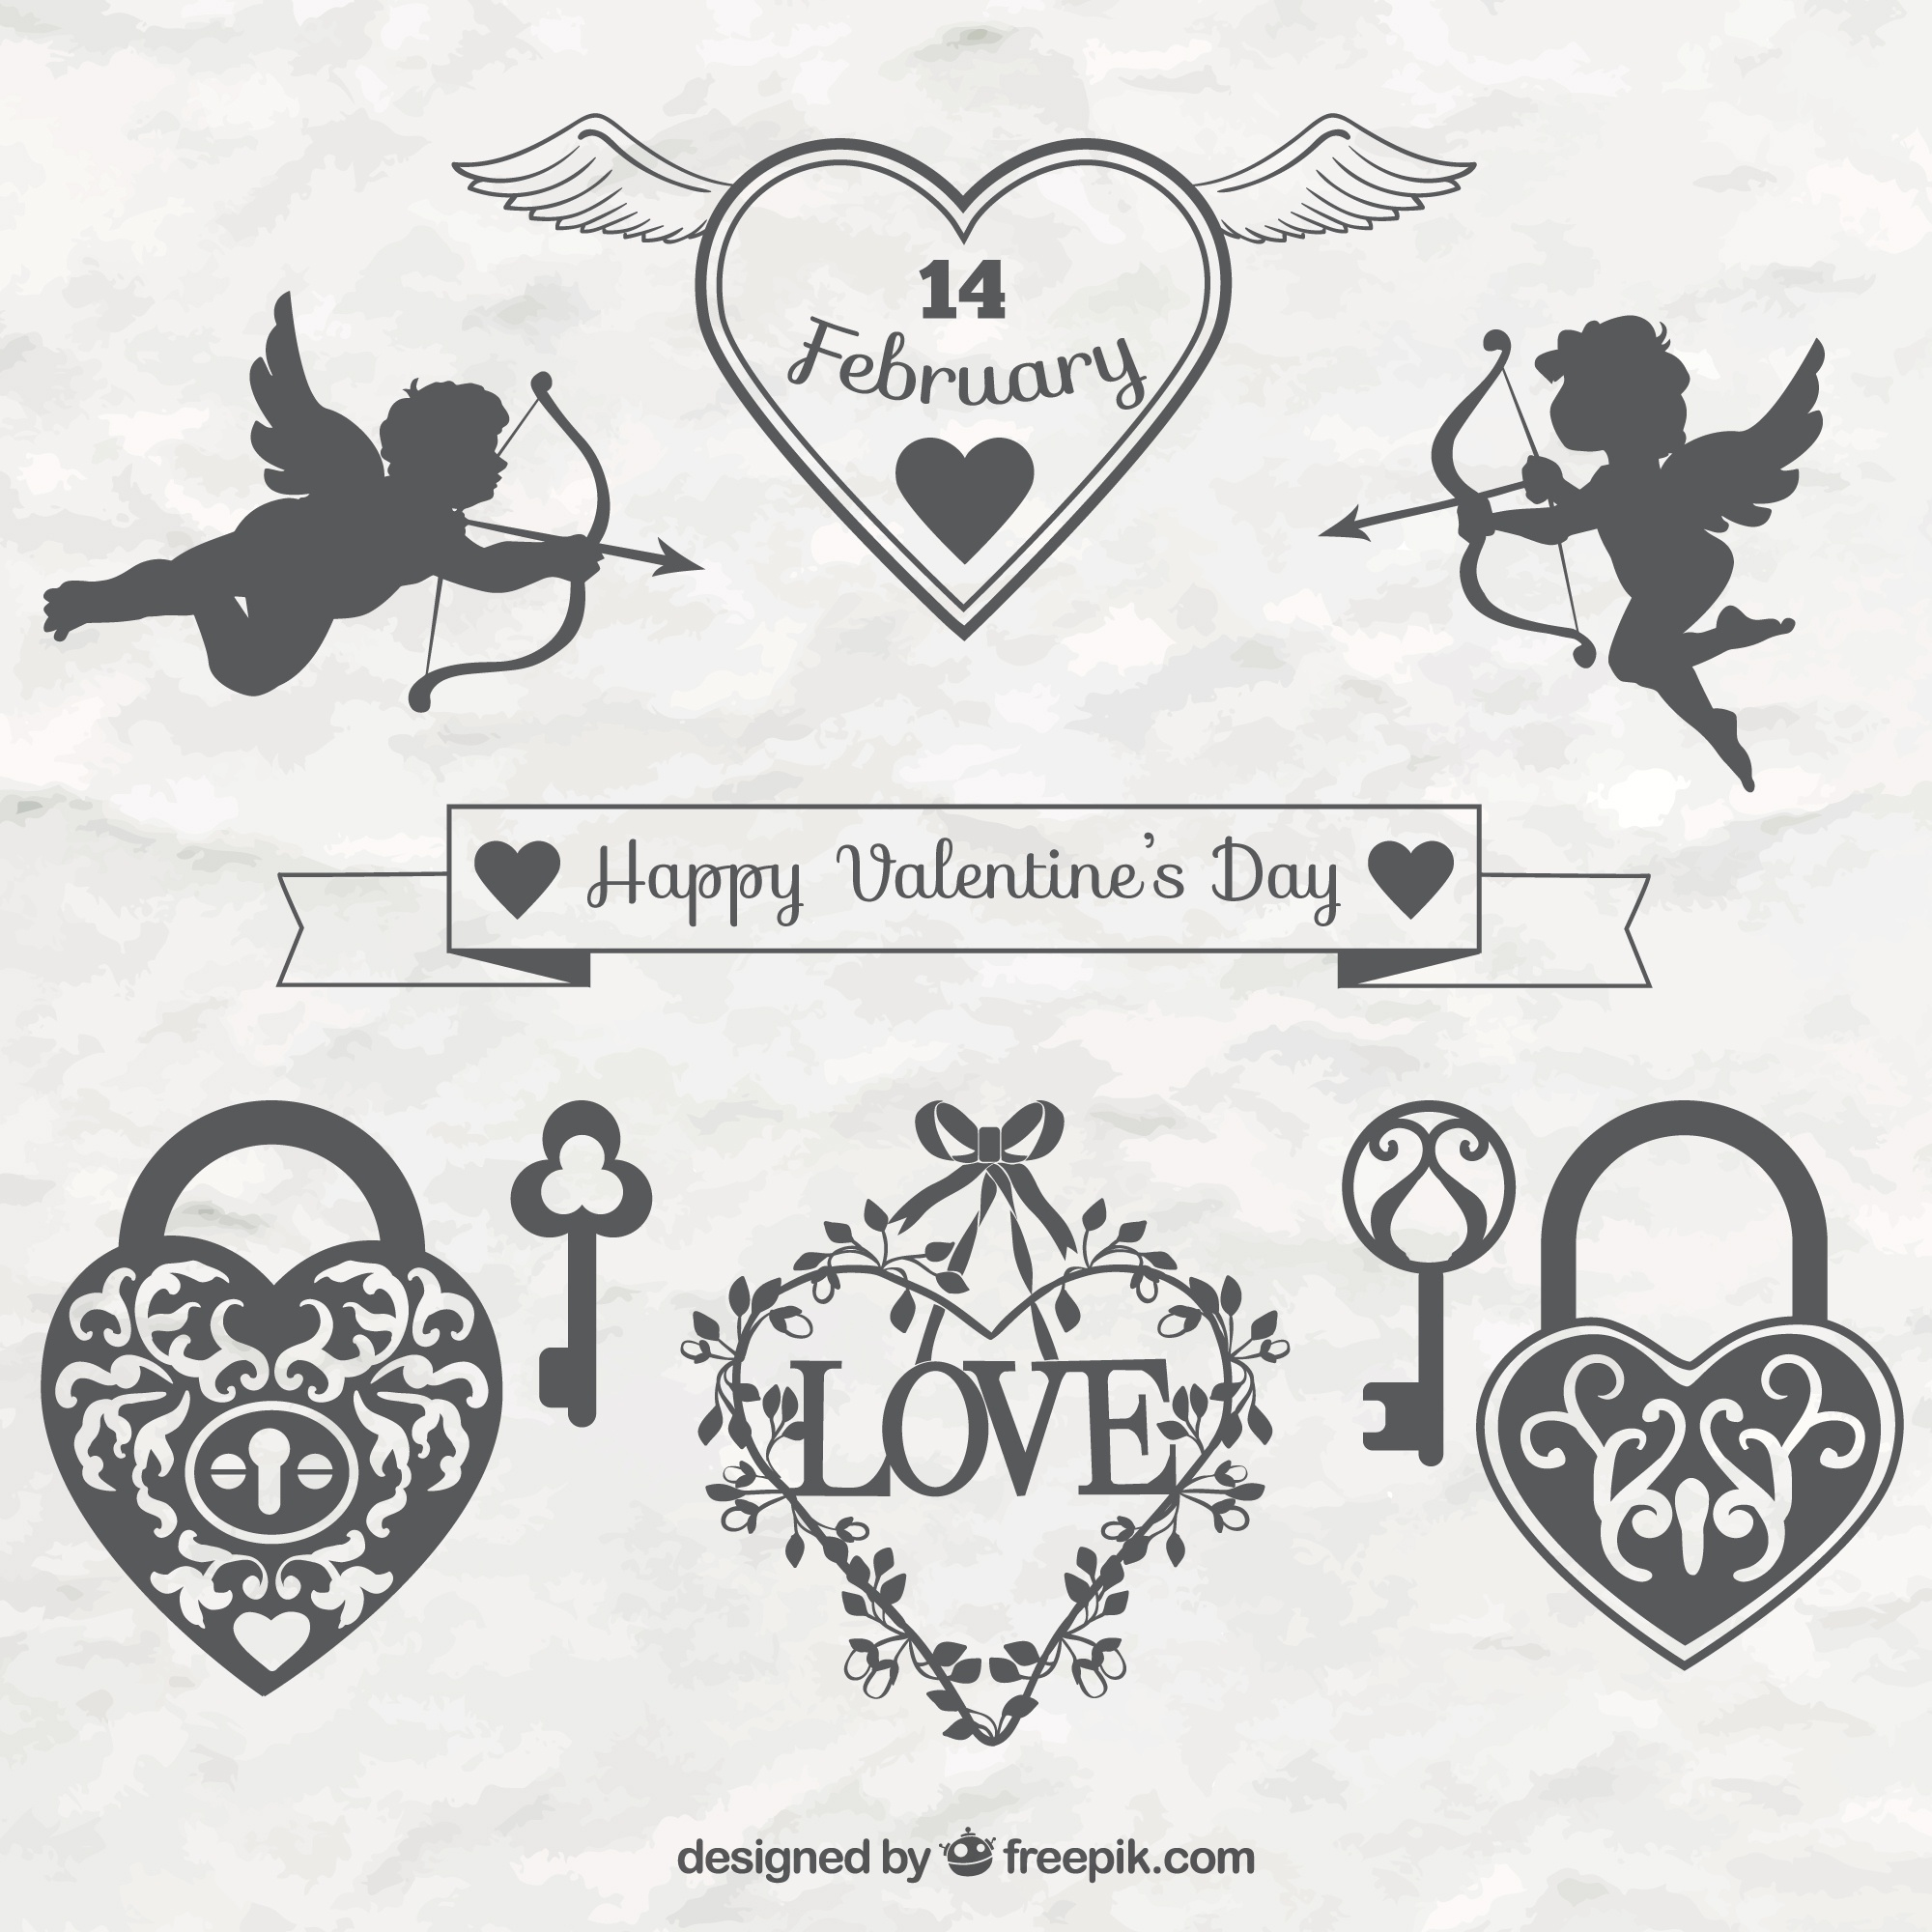 Elegant valentine day decorative ornaments